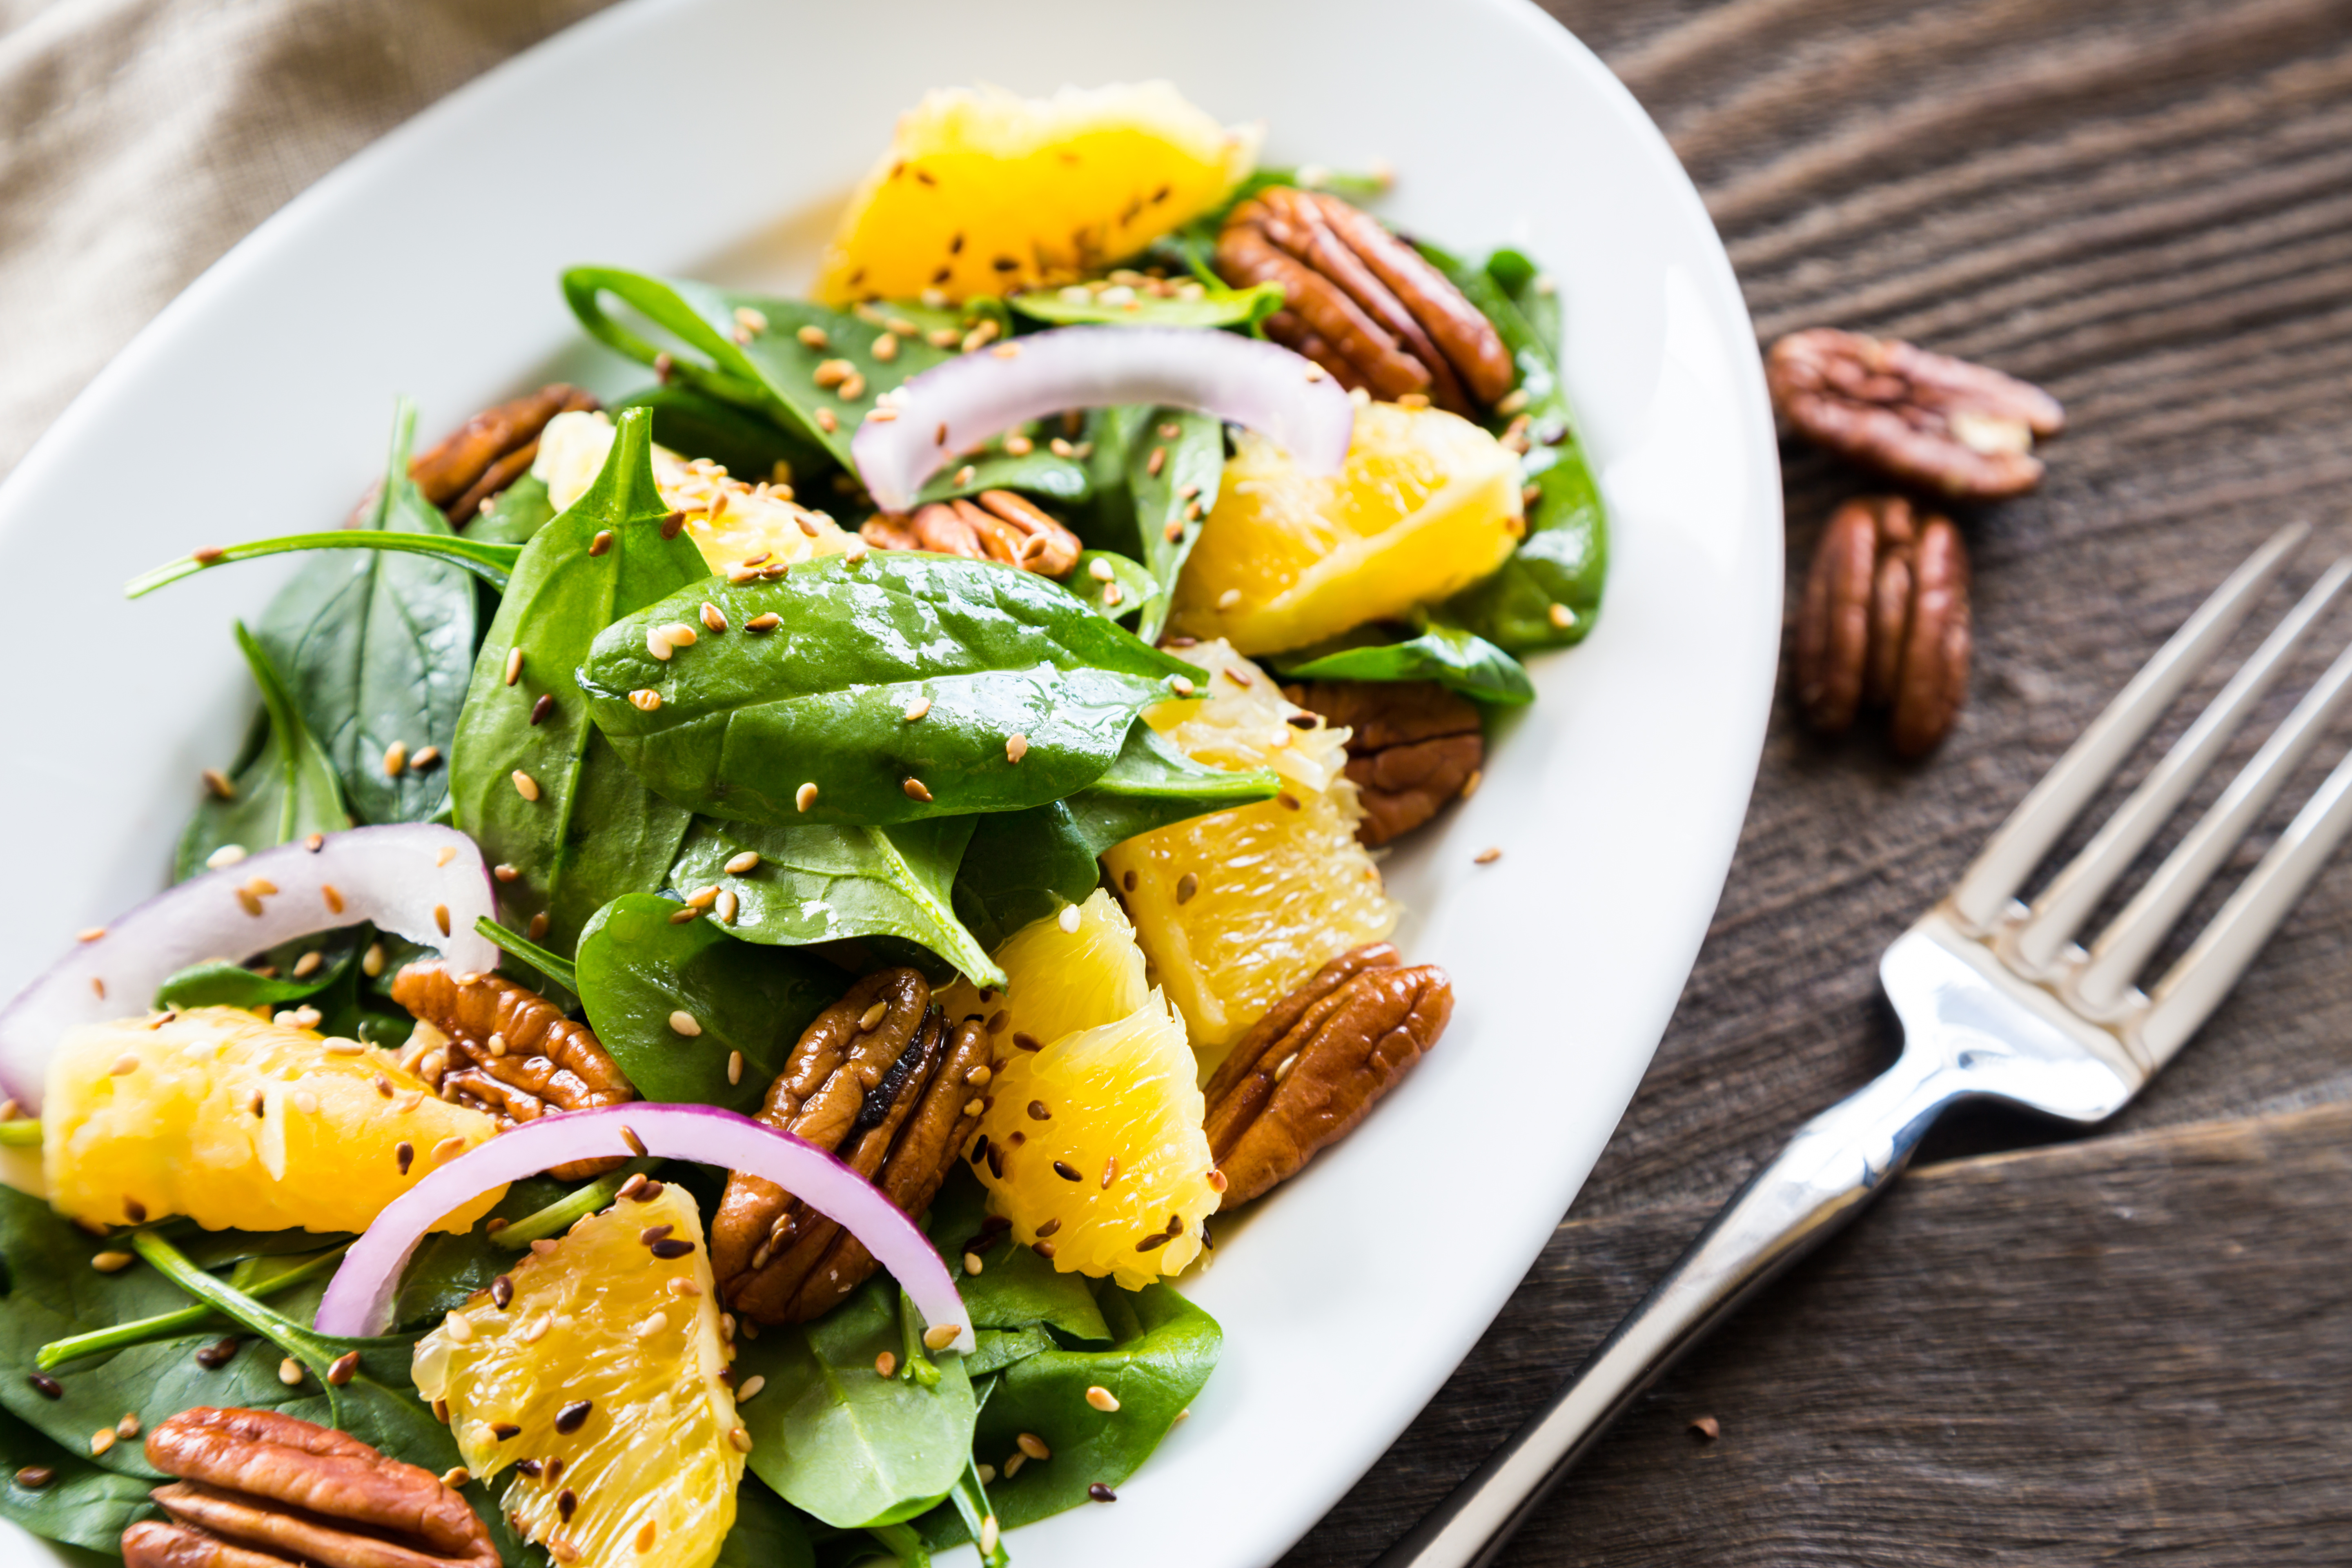 Image for Spinach Salad with Mandarins & Pecans